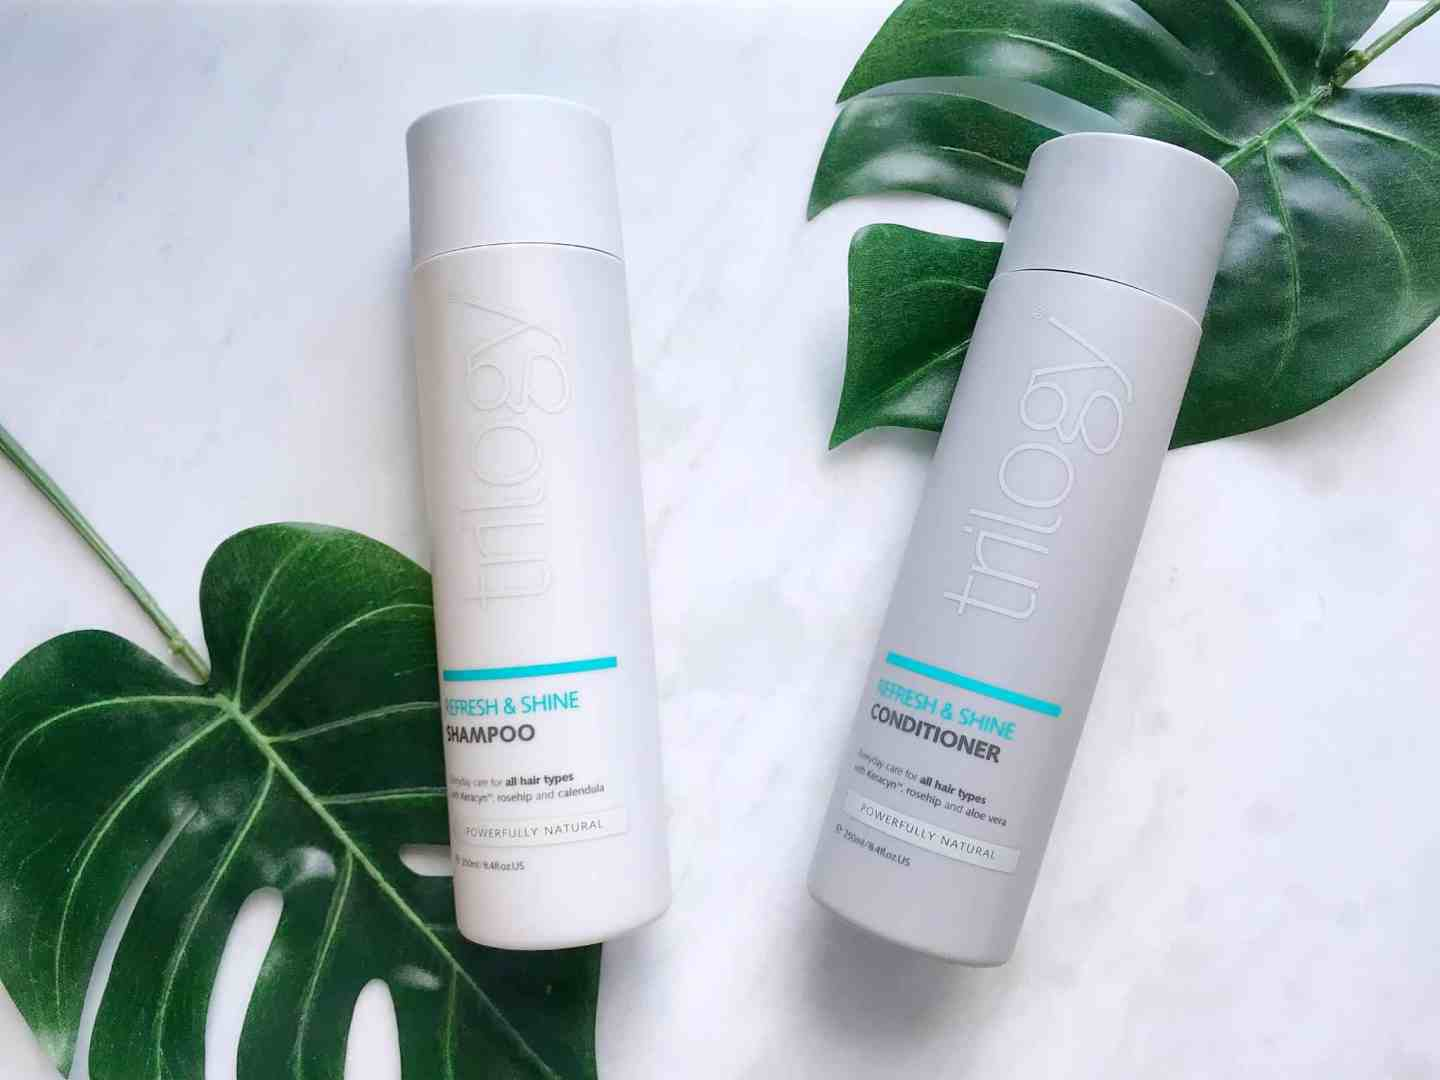 Trilogy Refresh and Shine Shampoo and Conditioner Review